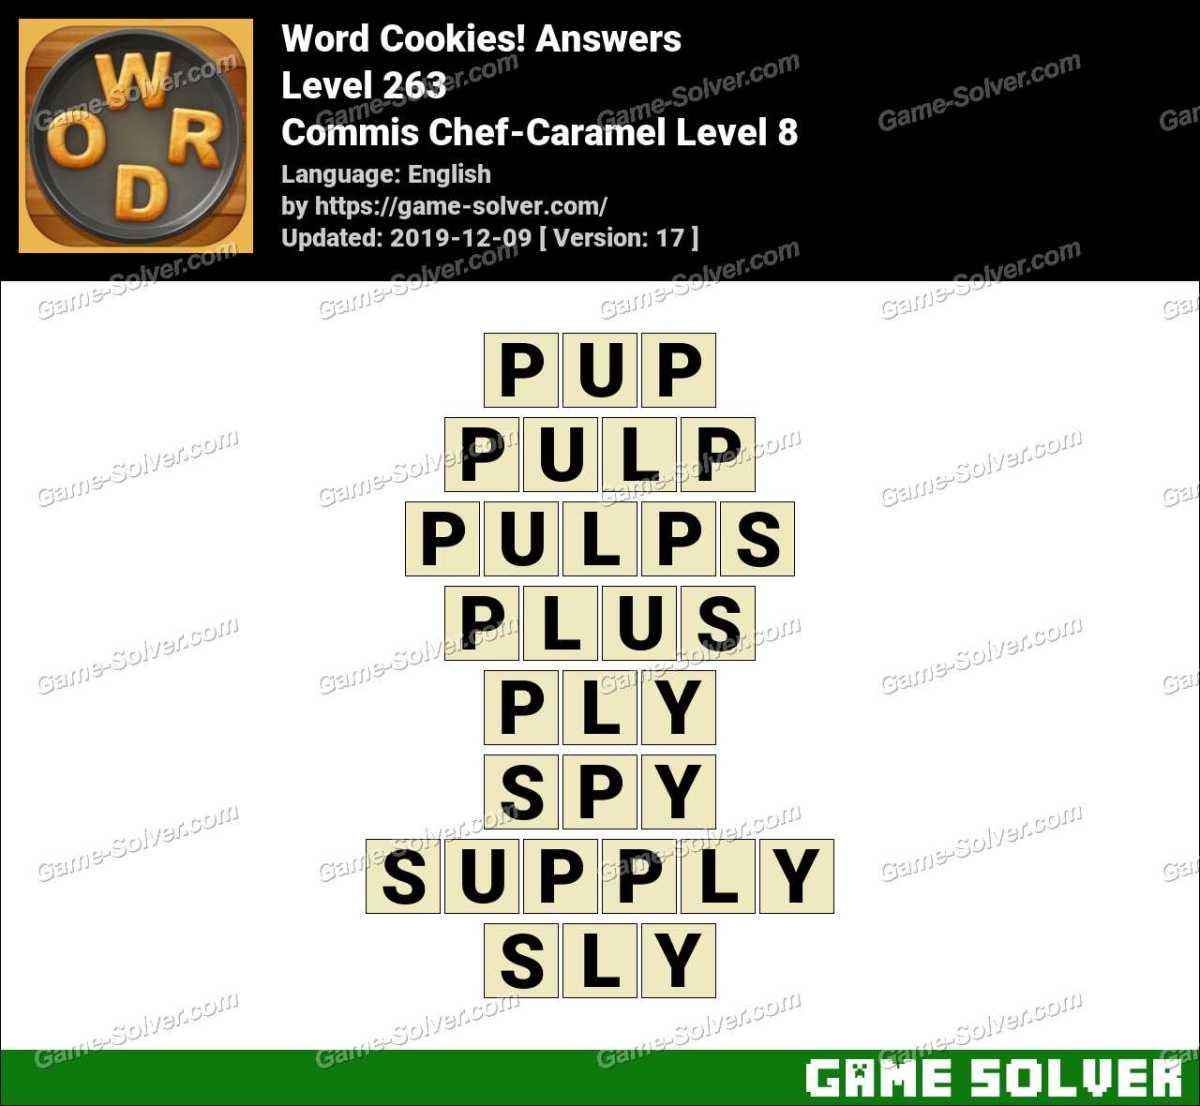 Word Cookies Commis Chef-Caramel Level 8 Answers